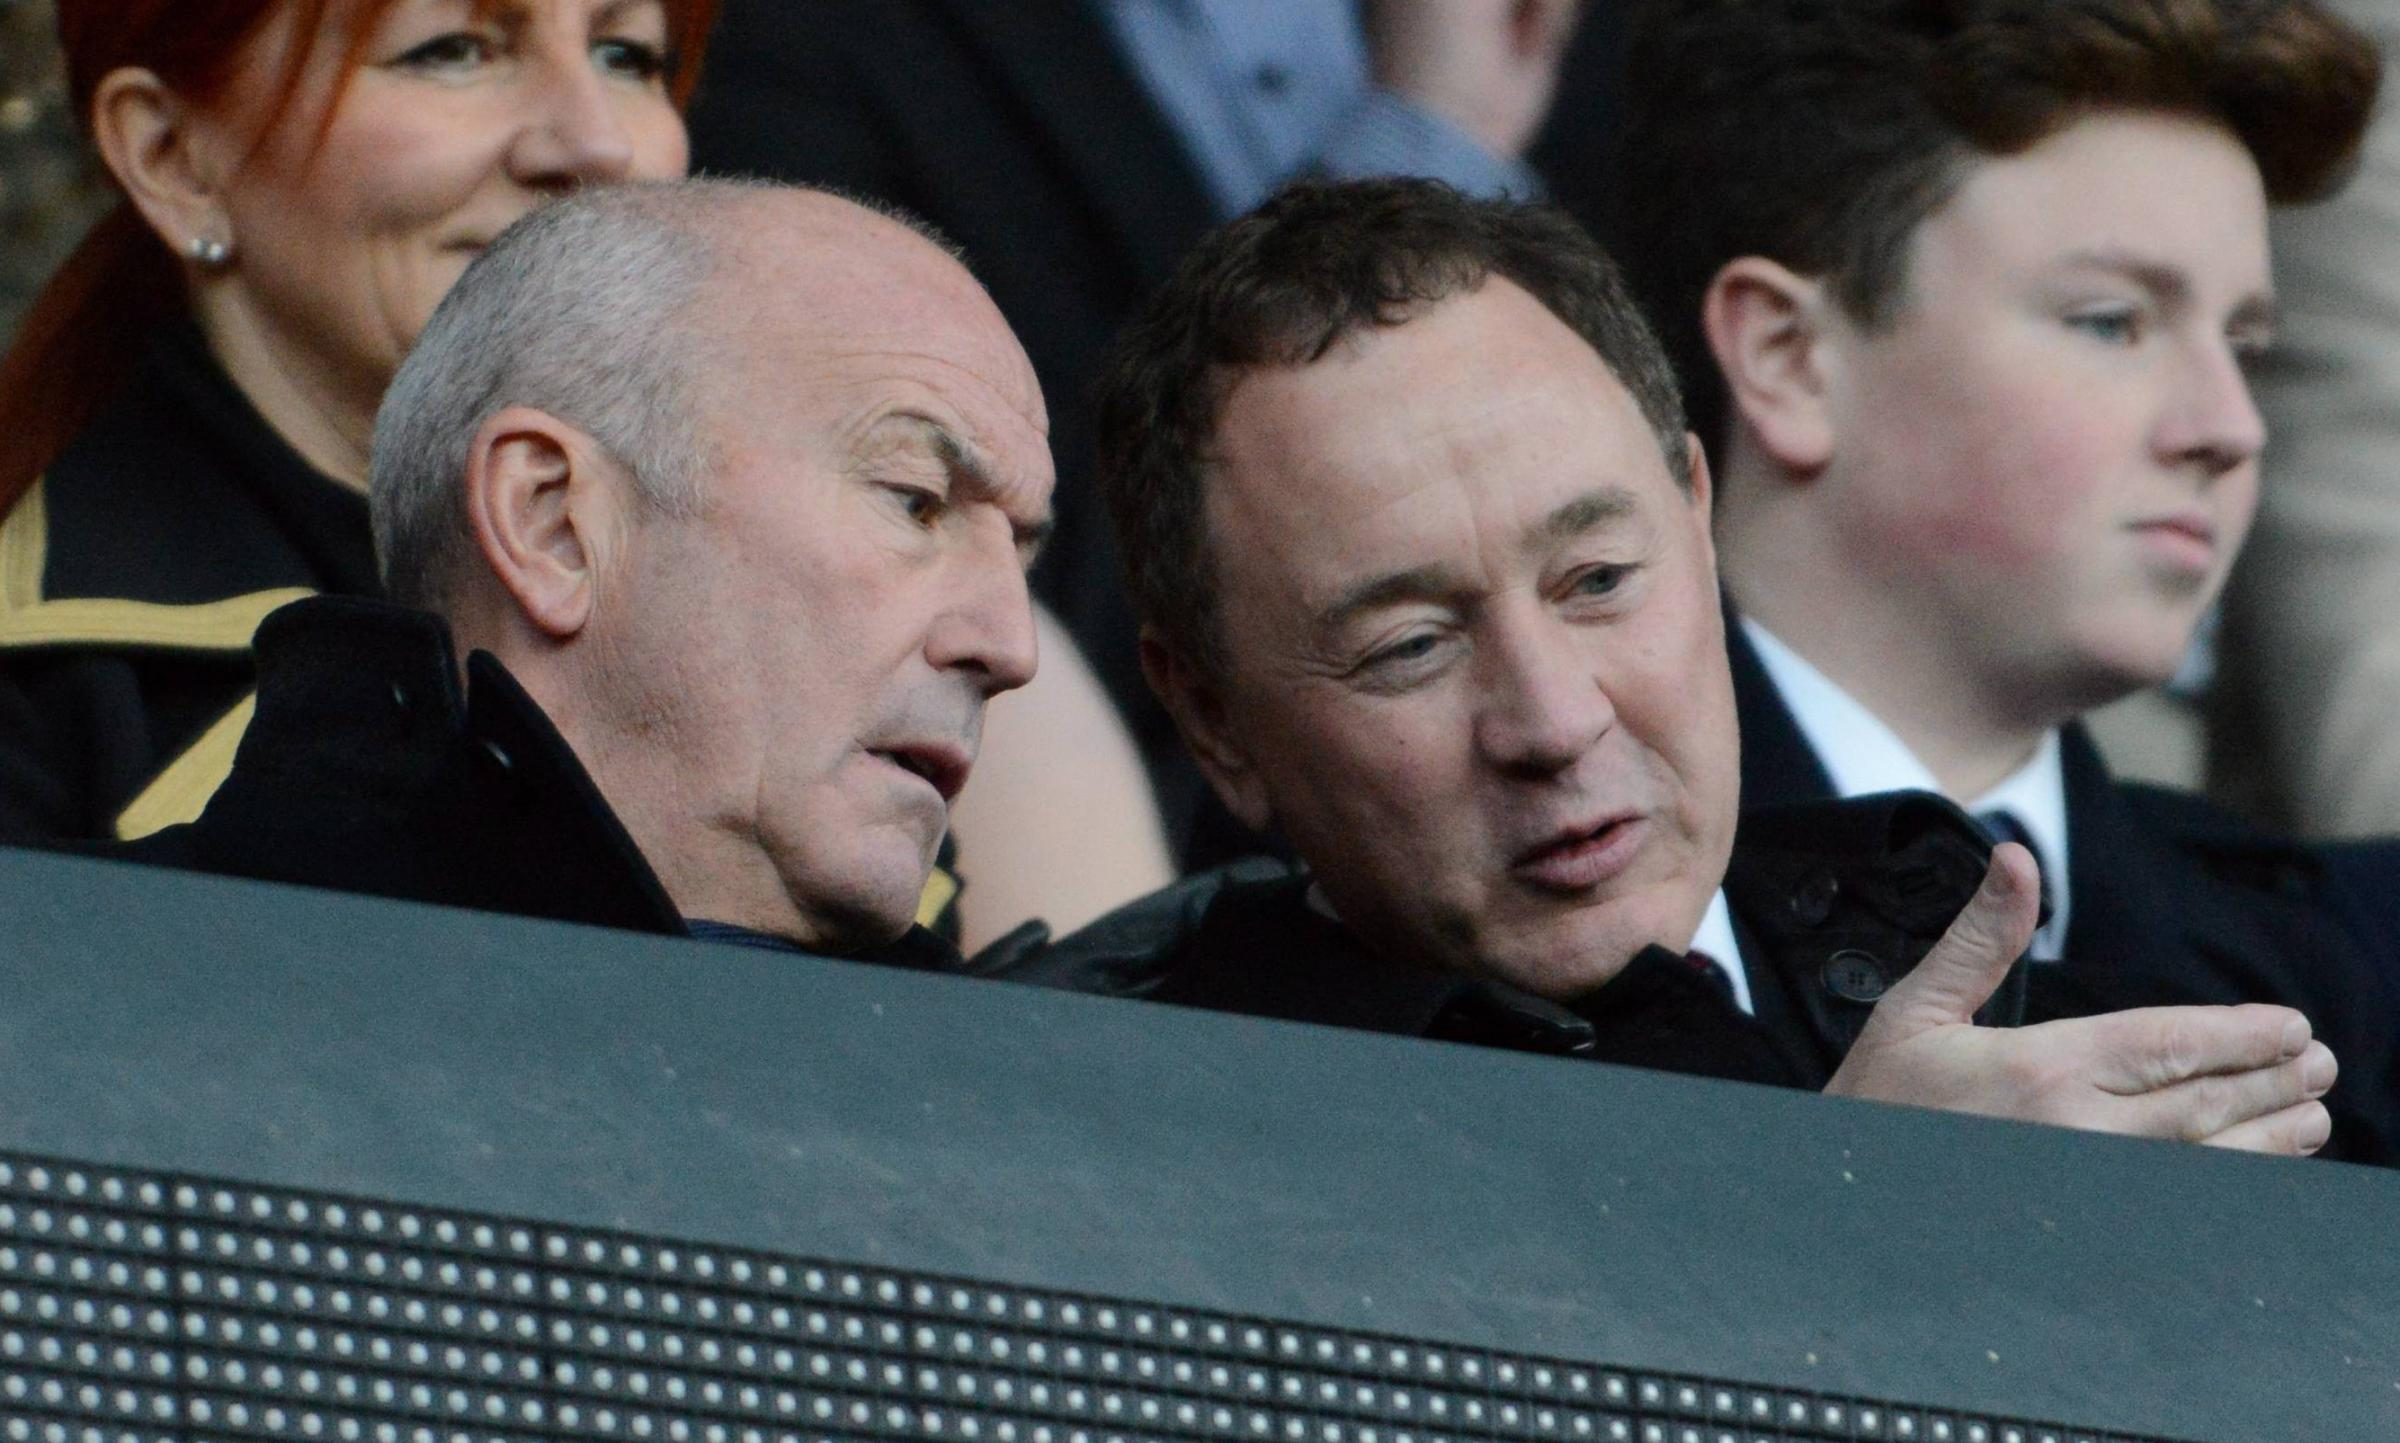 Tony Pulis takes his seat in the stands alongside chairman Steve Gibson.